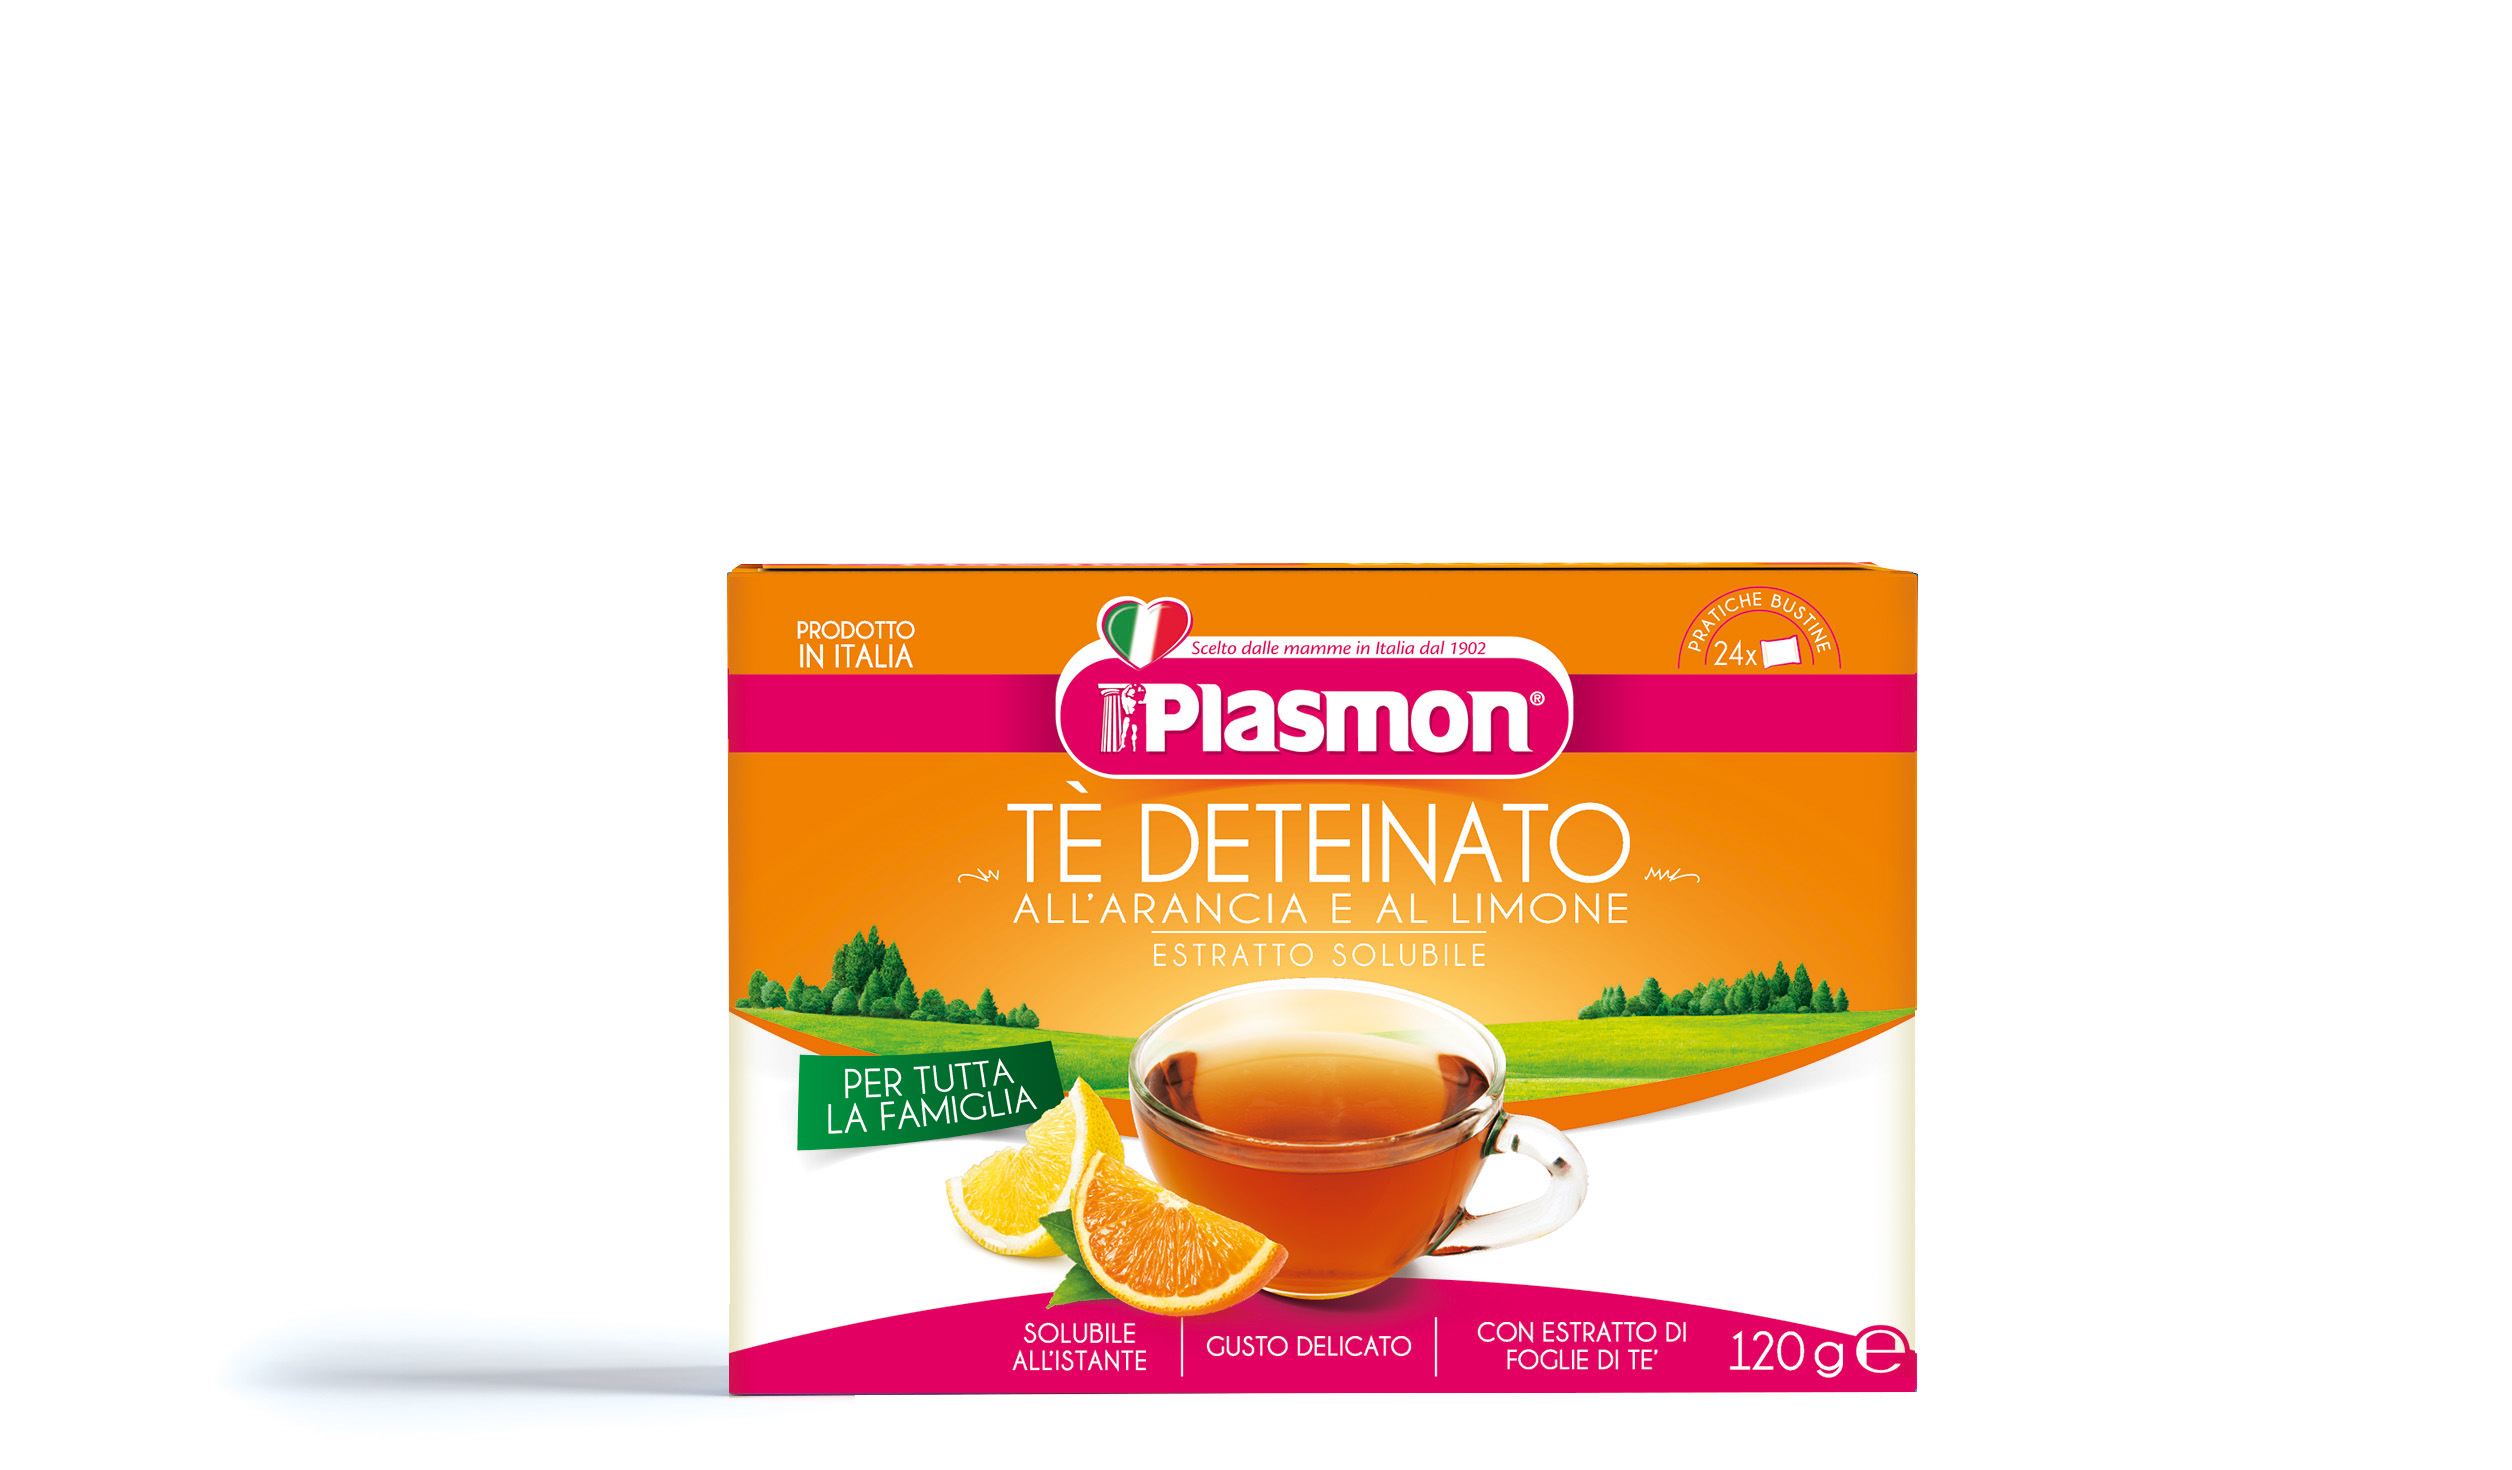 Lemon and Orange tea - soluble extract